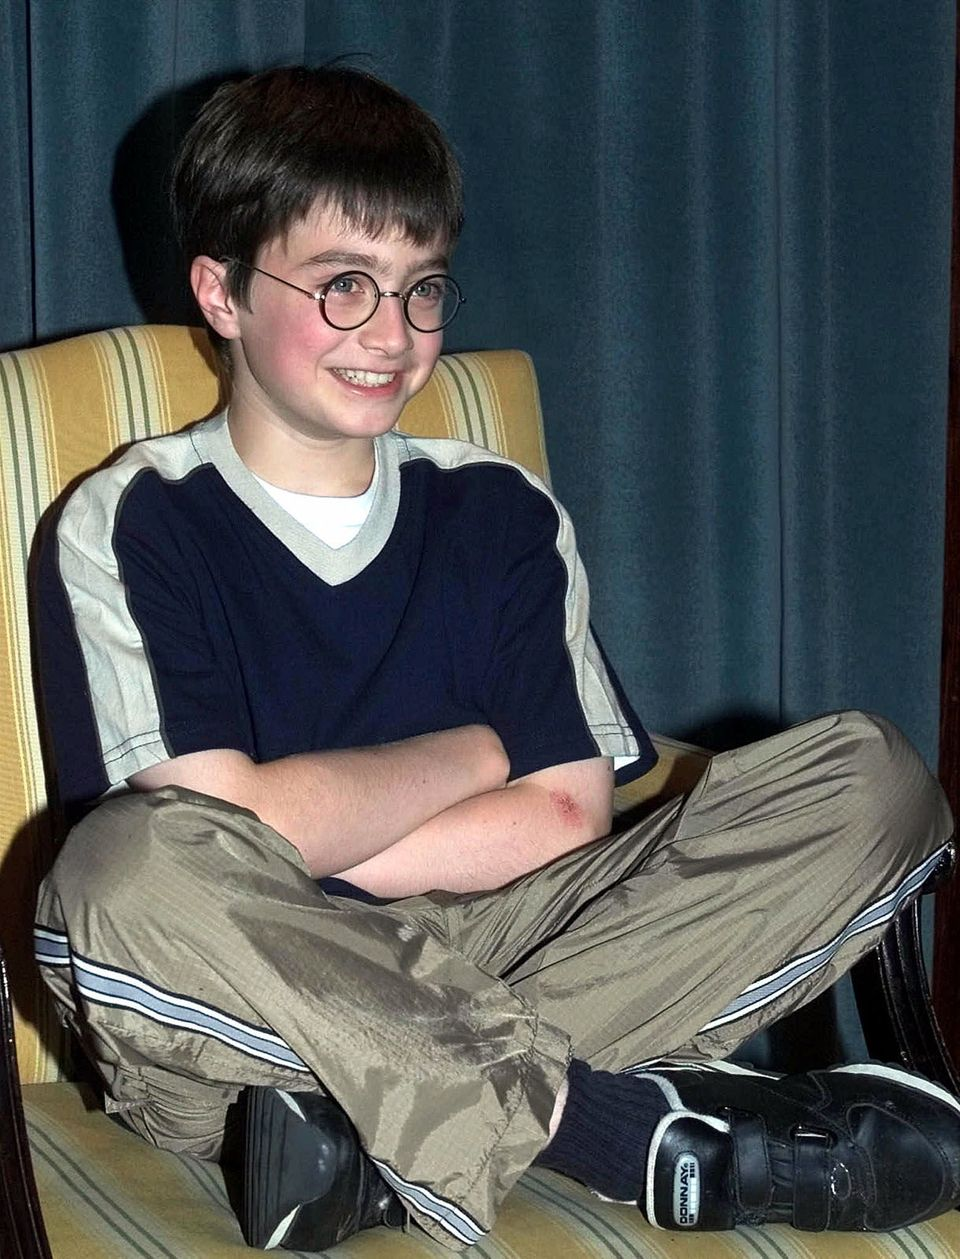 Daniel was announced as the star of 'Harry Potter' in 2000.